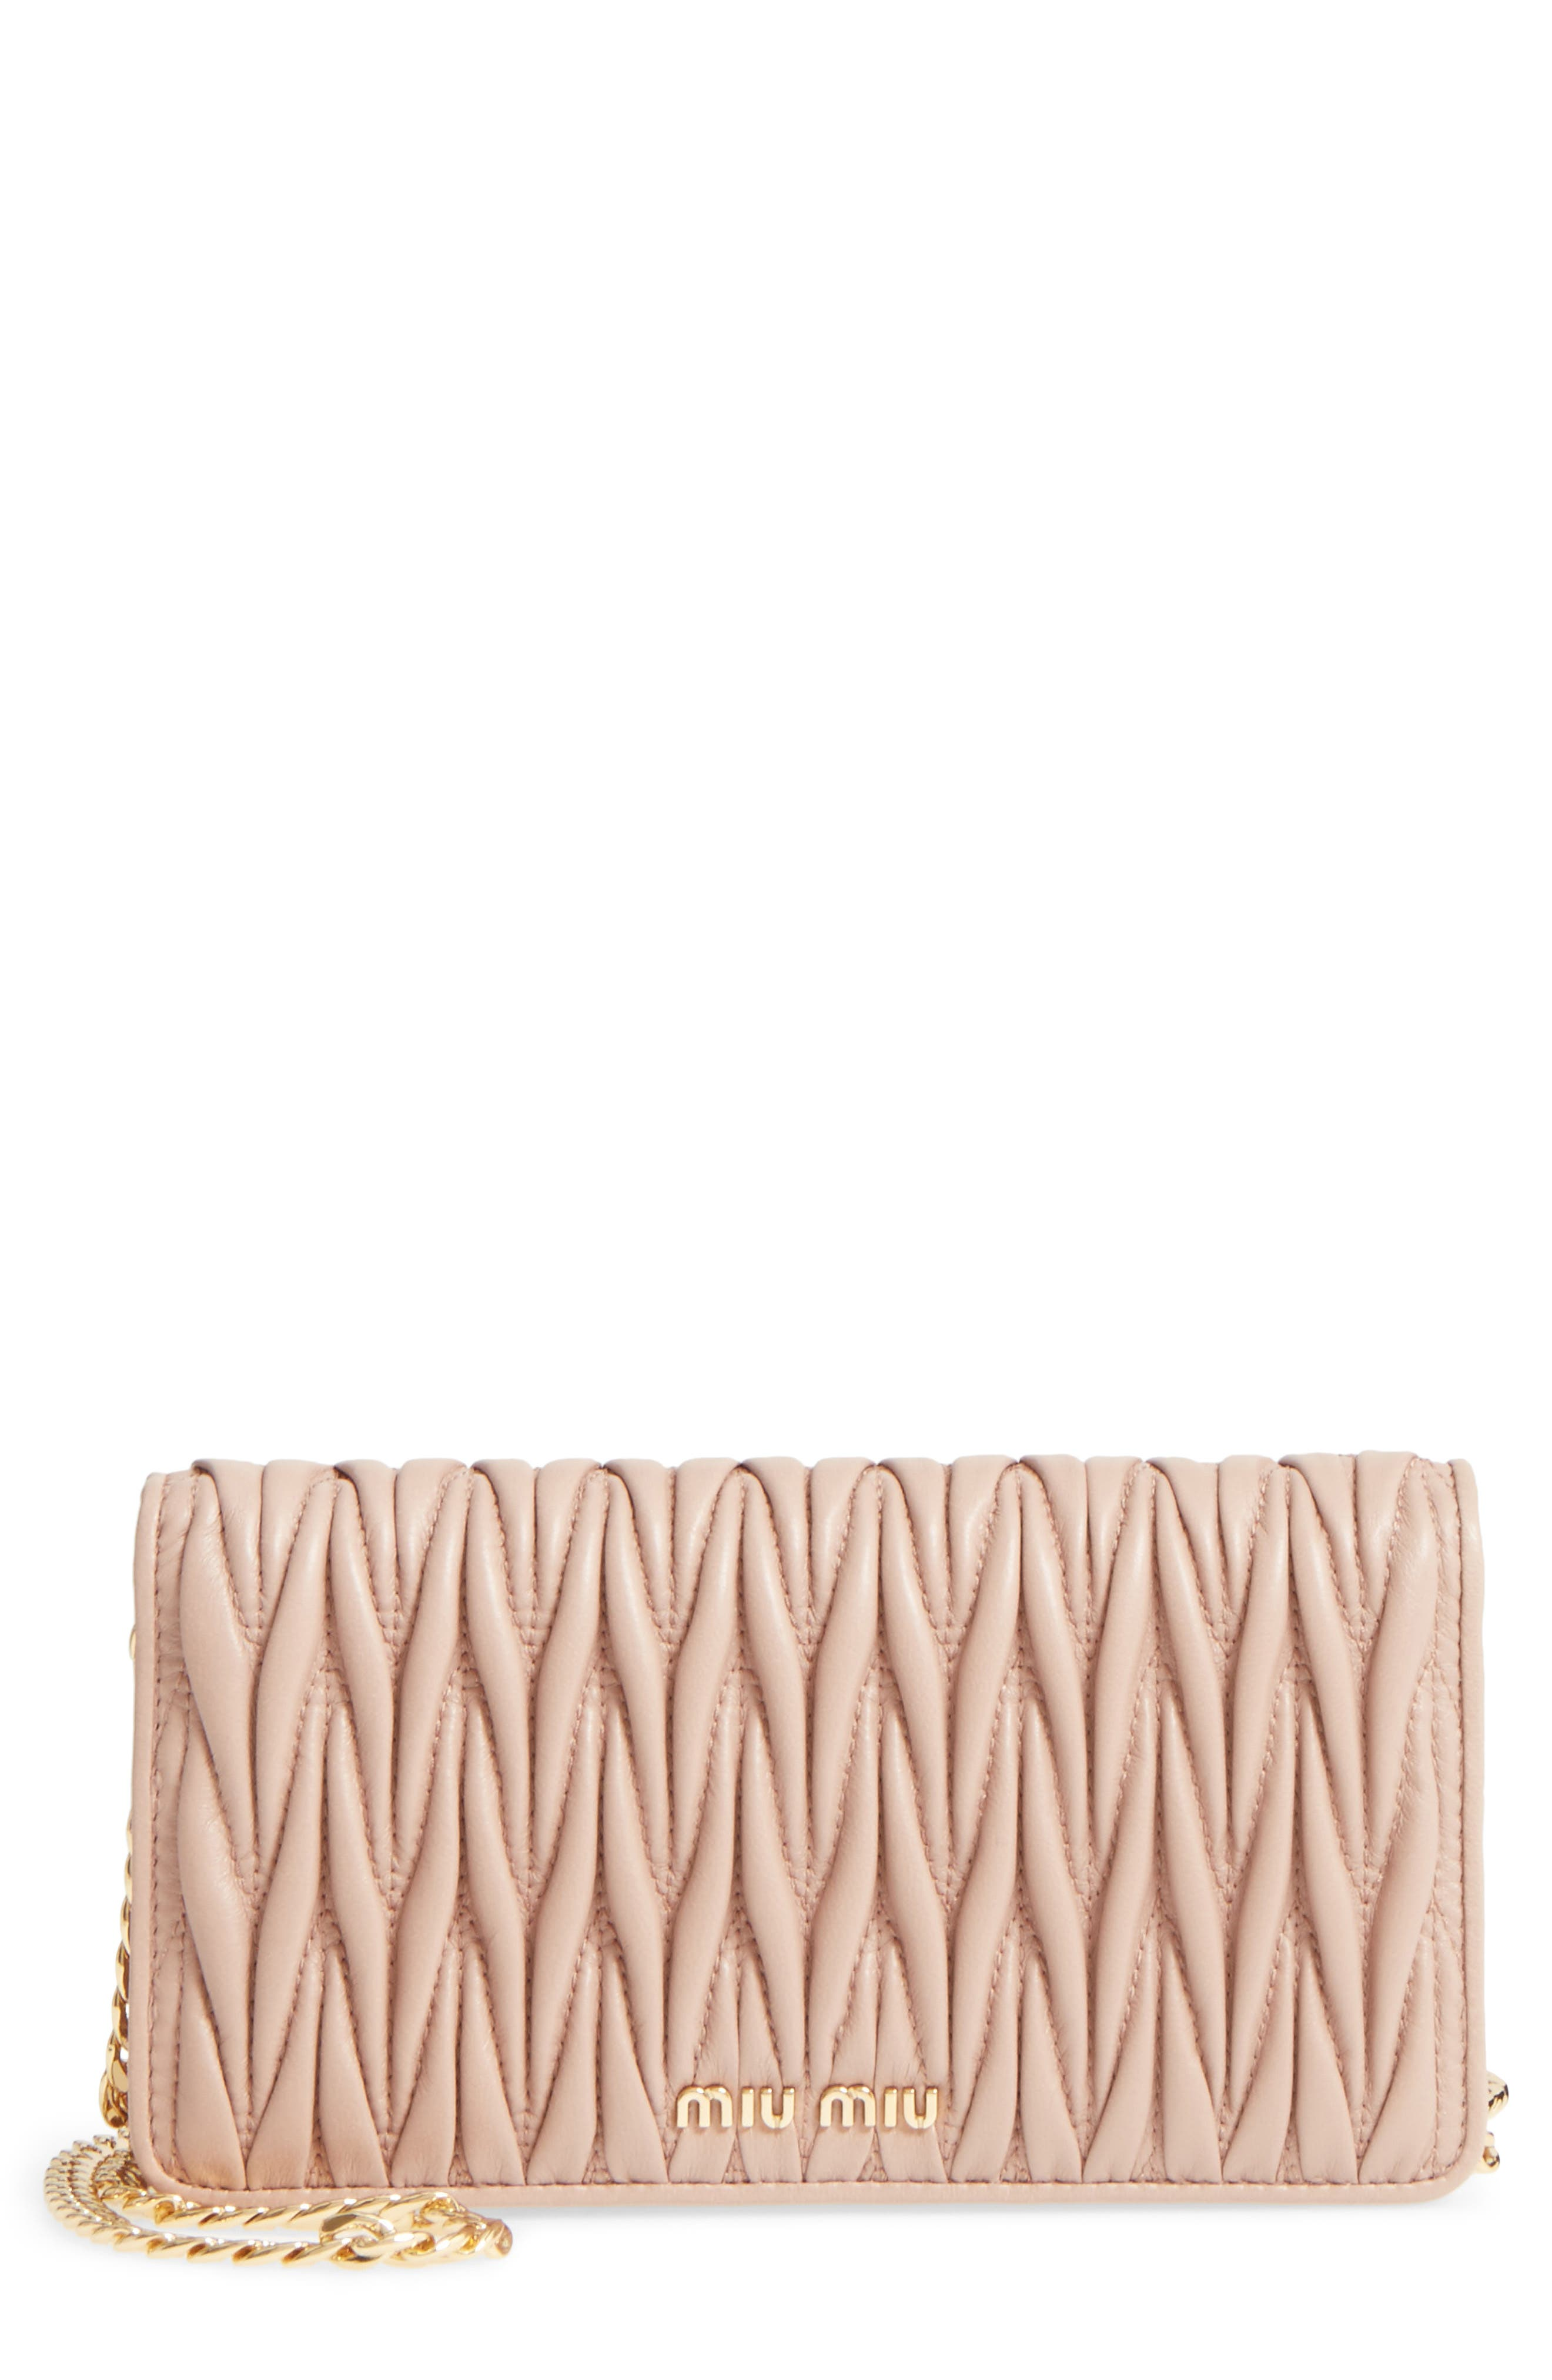 MIU MIU Matelassé Leather Wallet on a Chain, Main, color, CAMMEO